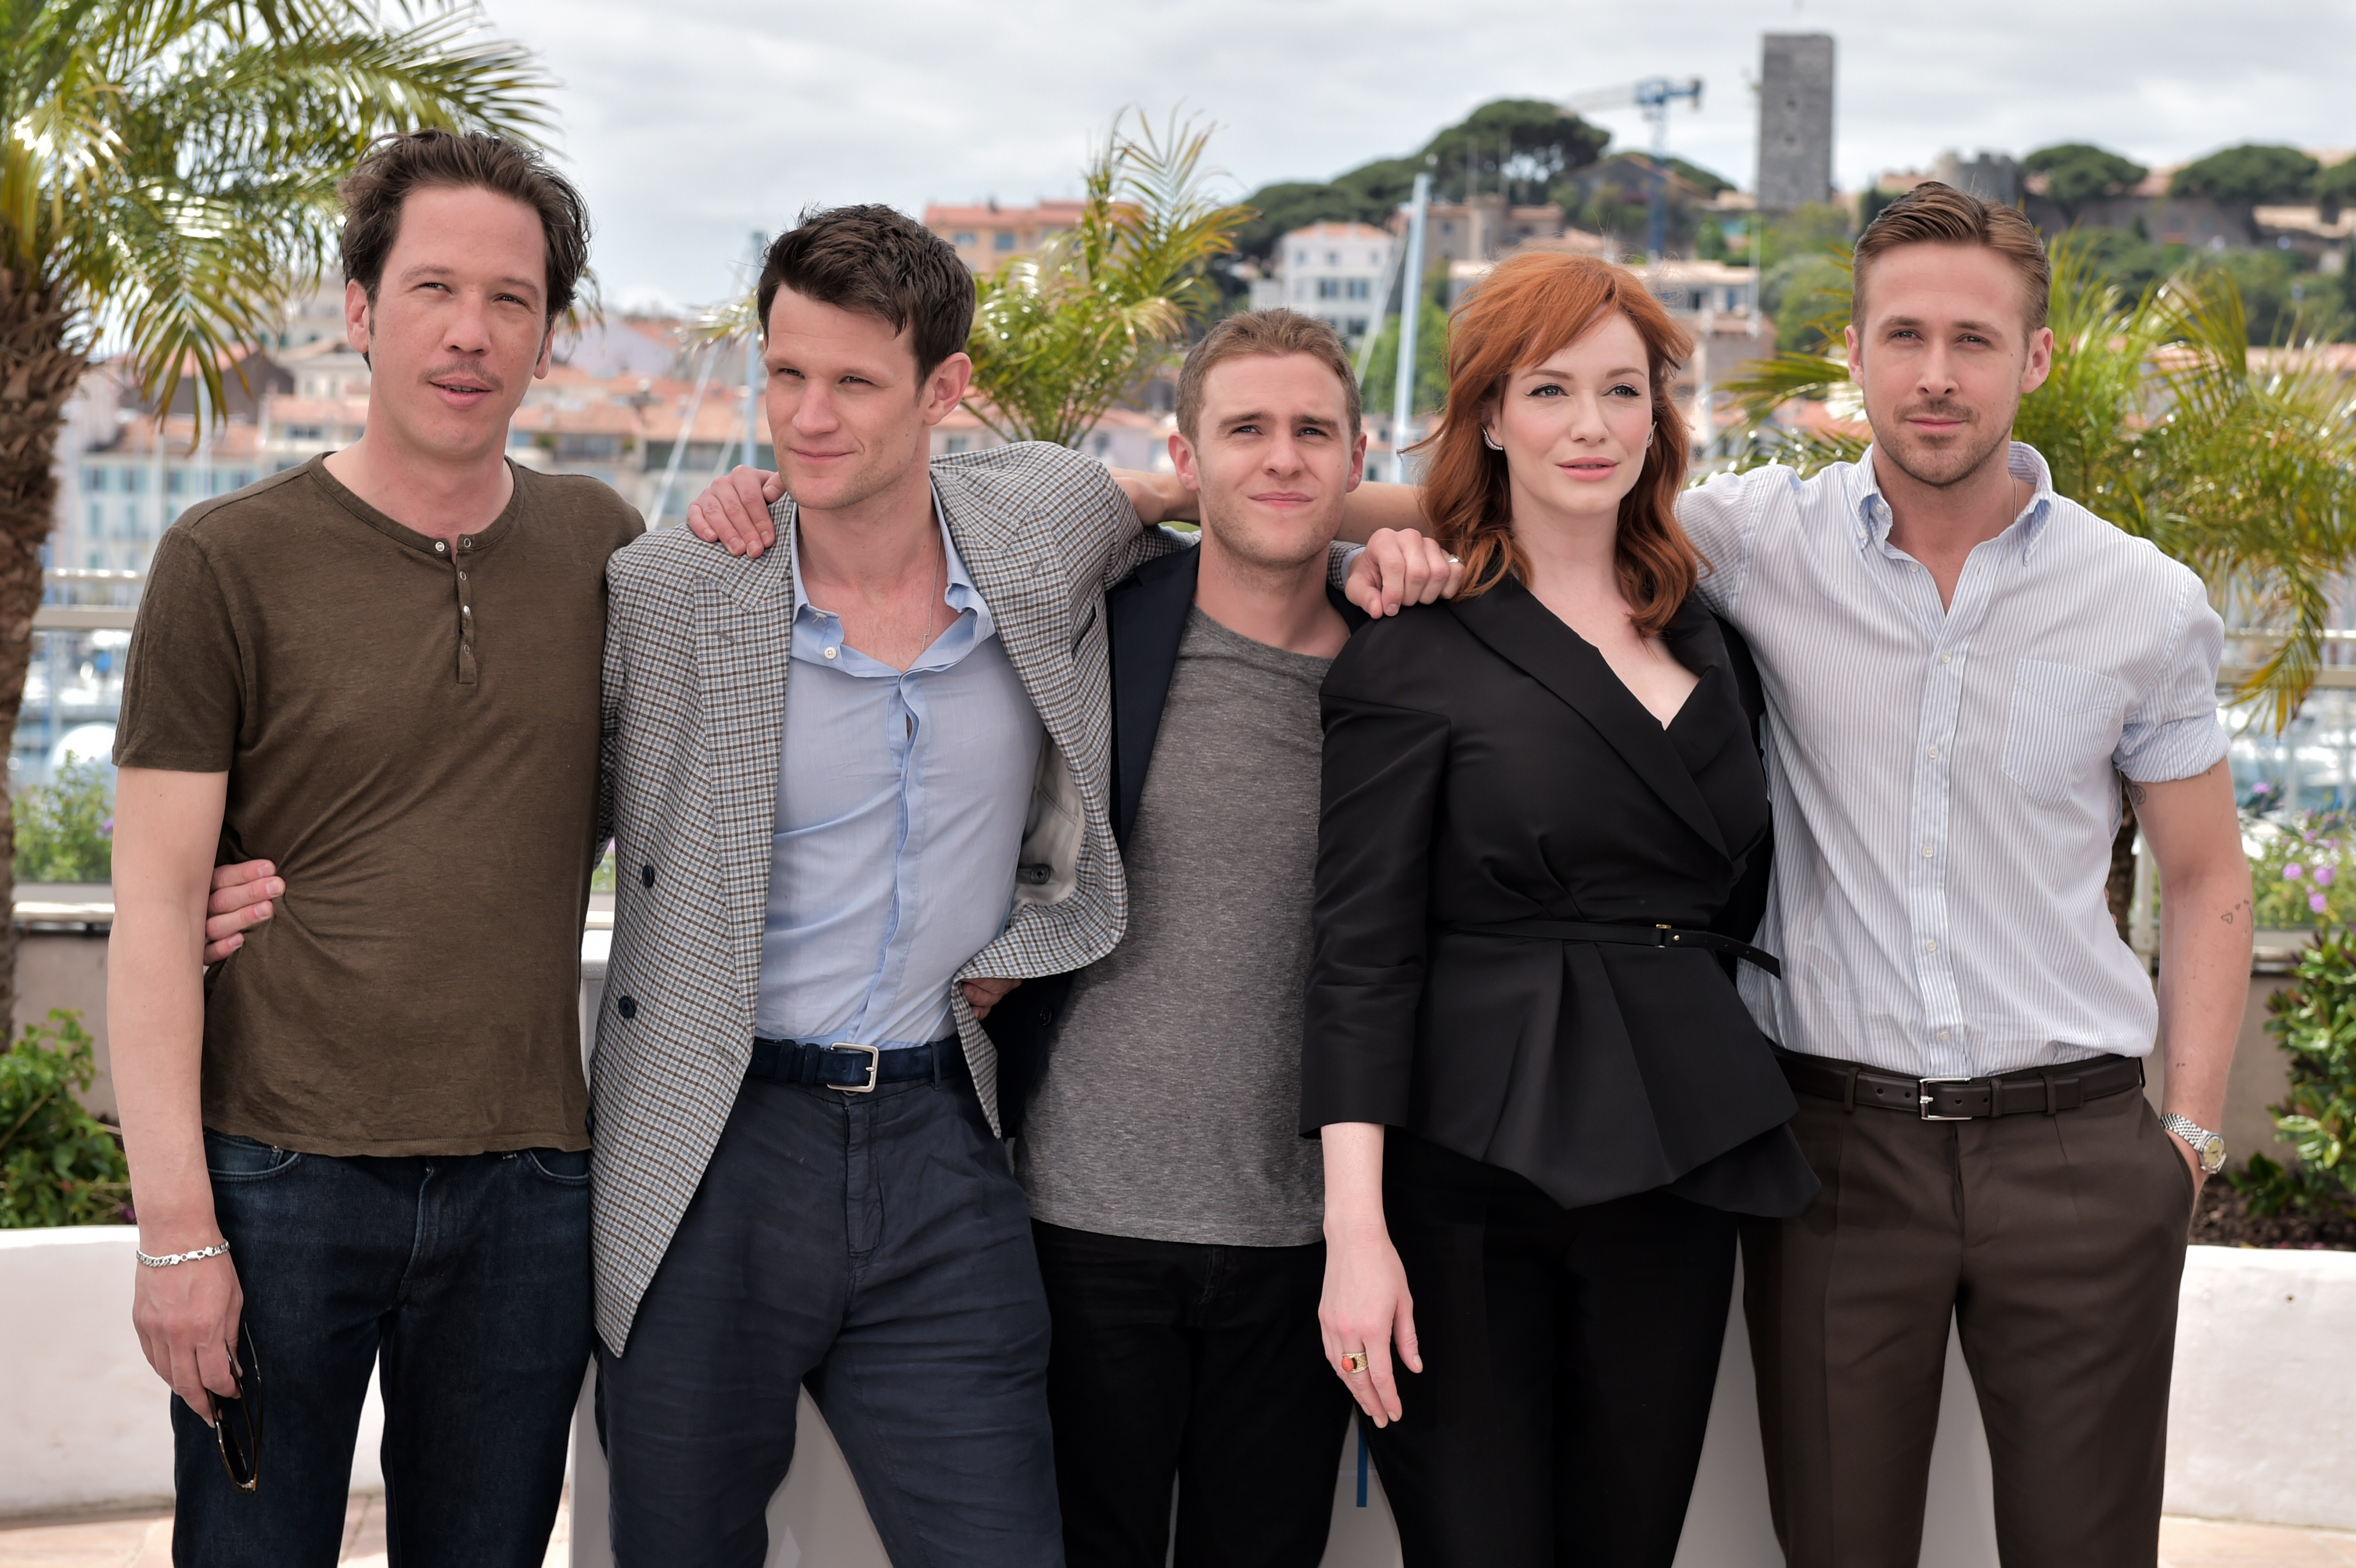 Reda Kateb, Matt Smith, Iain De Caestecker, Christina Hendricks and Ryan Gosling pose during a photocall for the film  Lost River  at the 67th edition of the Cannes Film Festival in Cannes, France, on May 20.